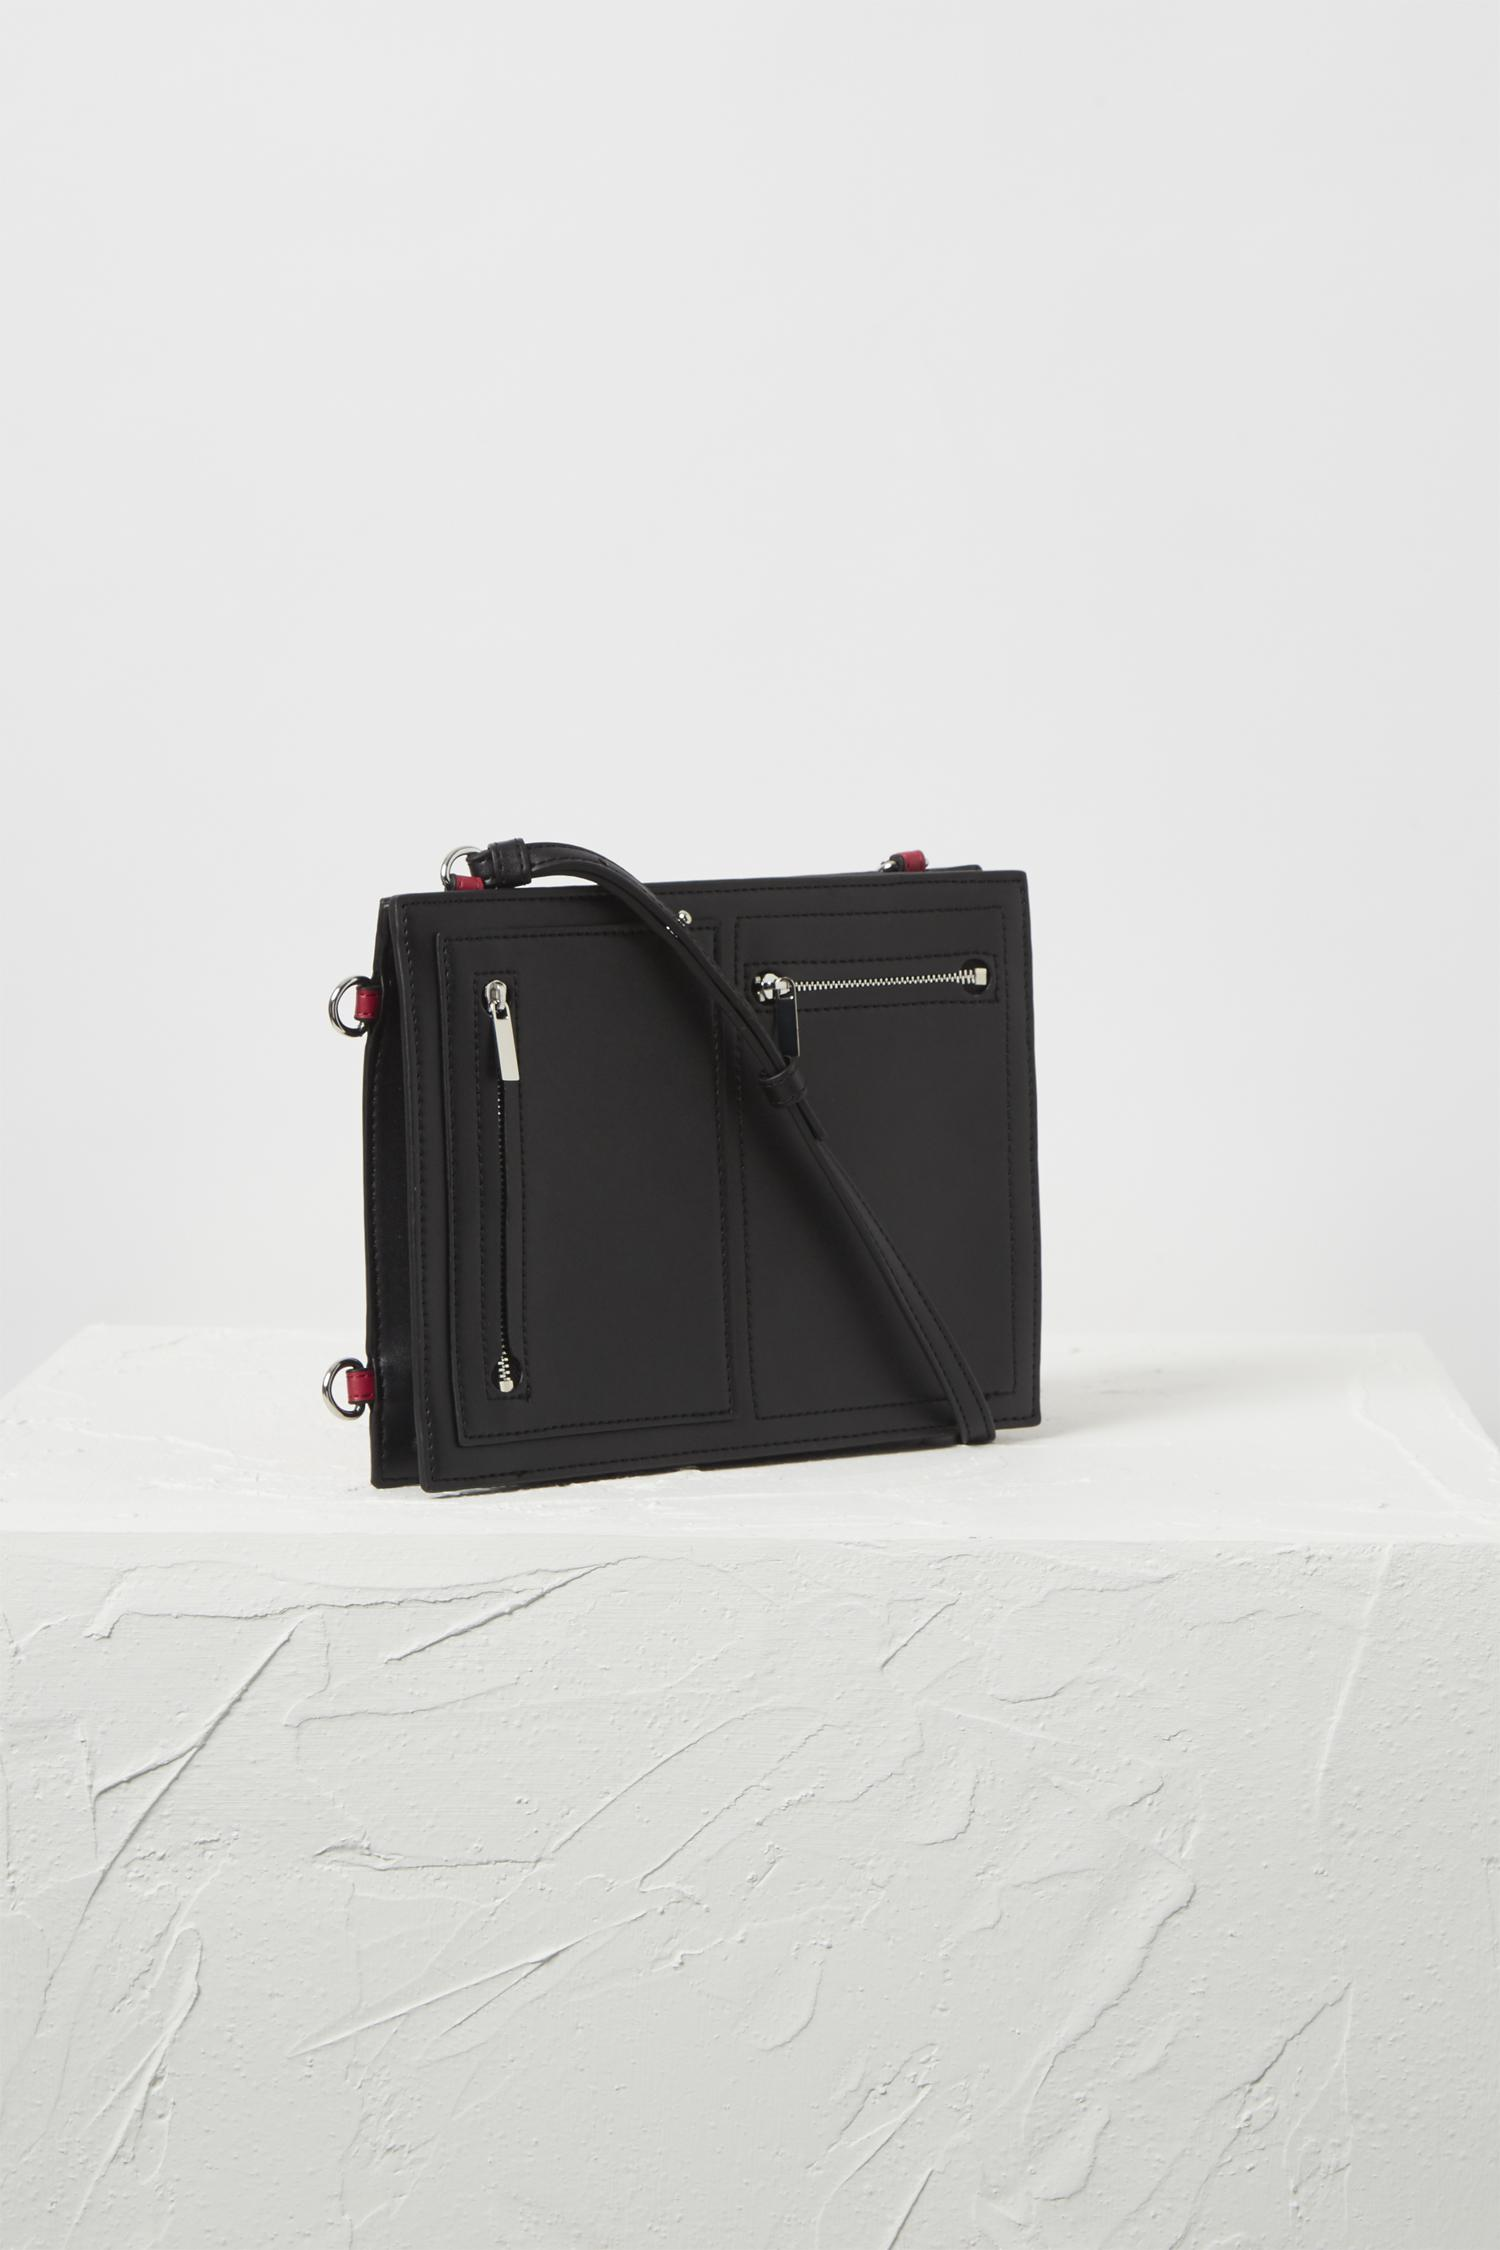 French Connection Dexter Upside Down Cross-body Bag in Black/Magenta (Black)